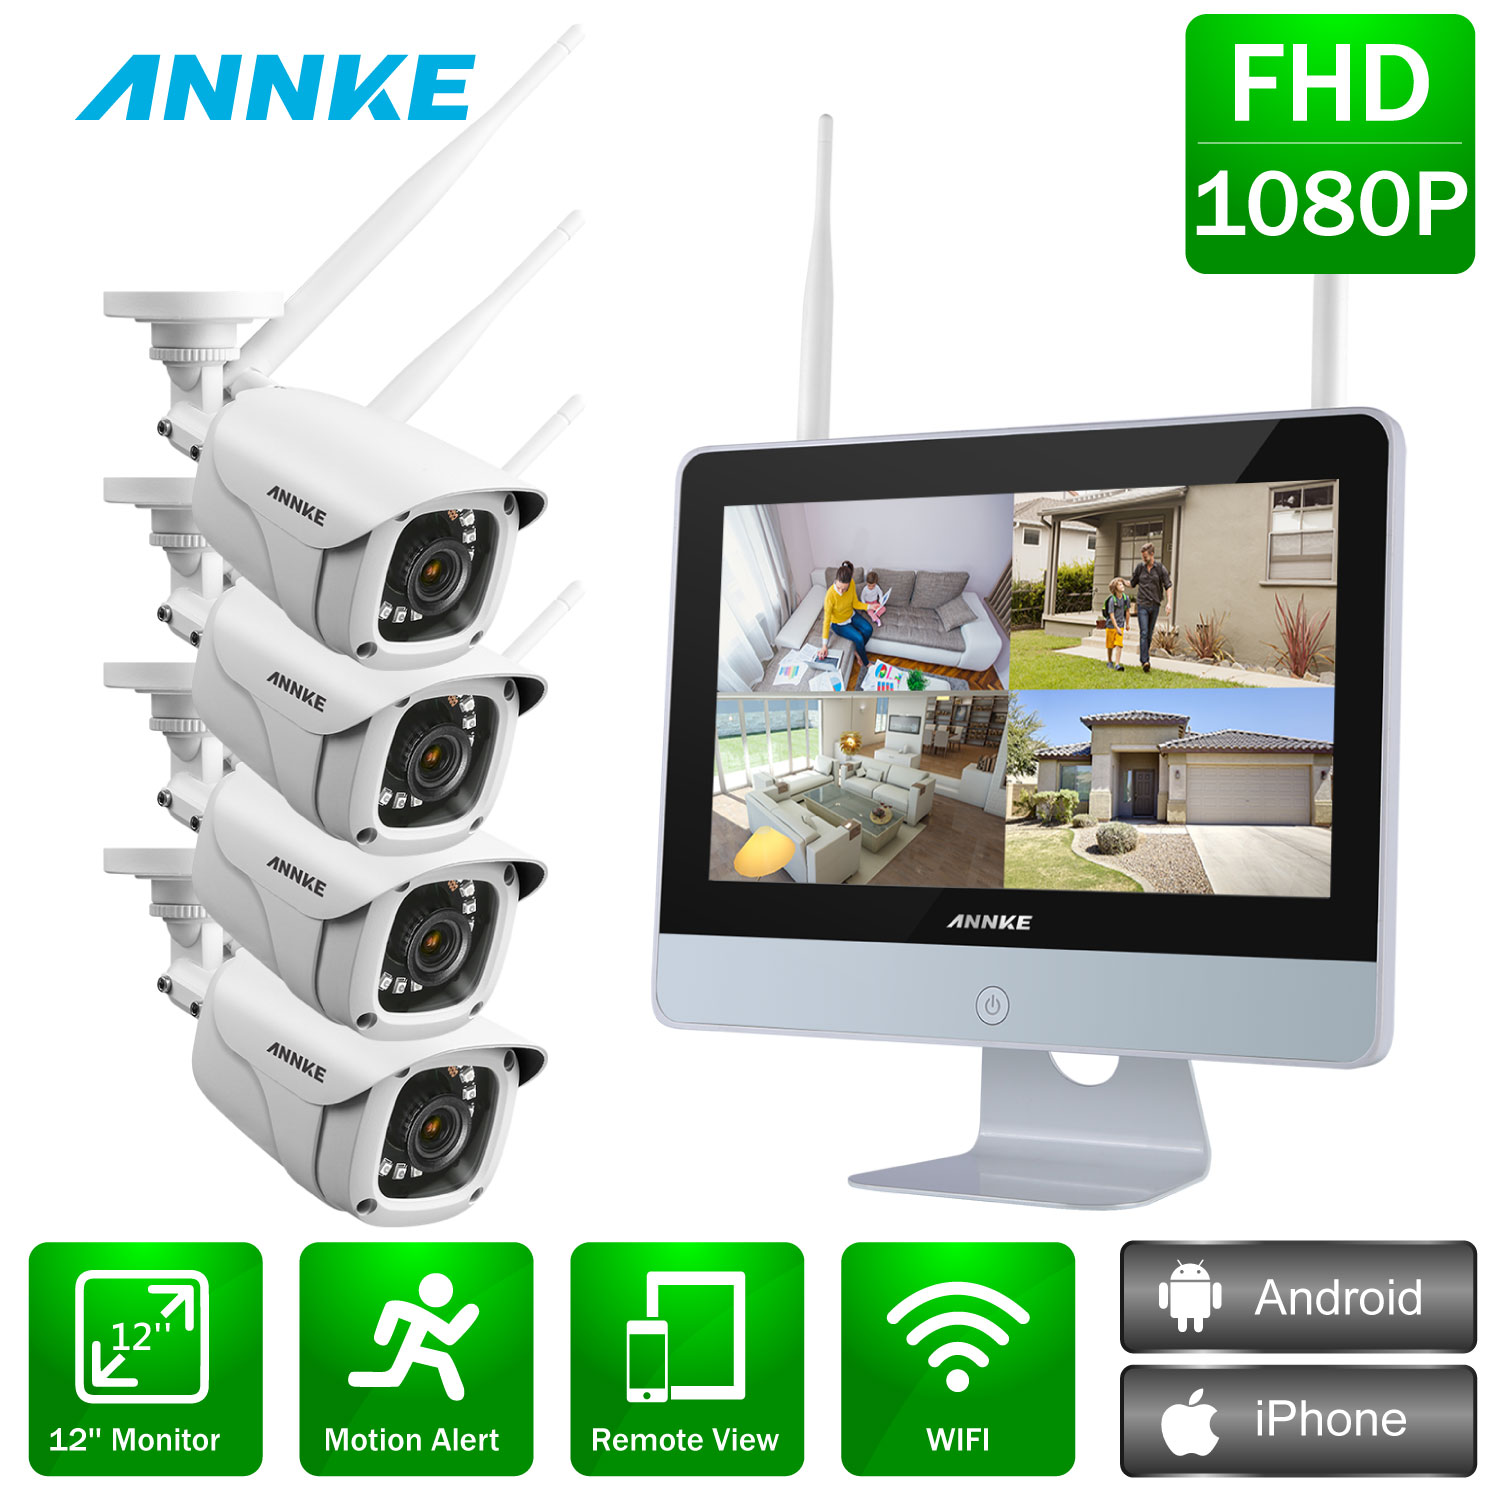 ANNKE 4CH 1080P FHD Wireless Video Security System 12inch LCD Screen NVR 4PCS 2MP Bullet IP Camera Outdoor CCTV Surveillance Kit